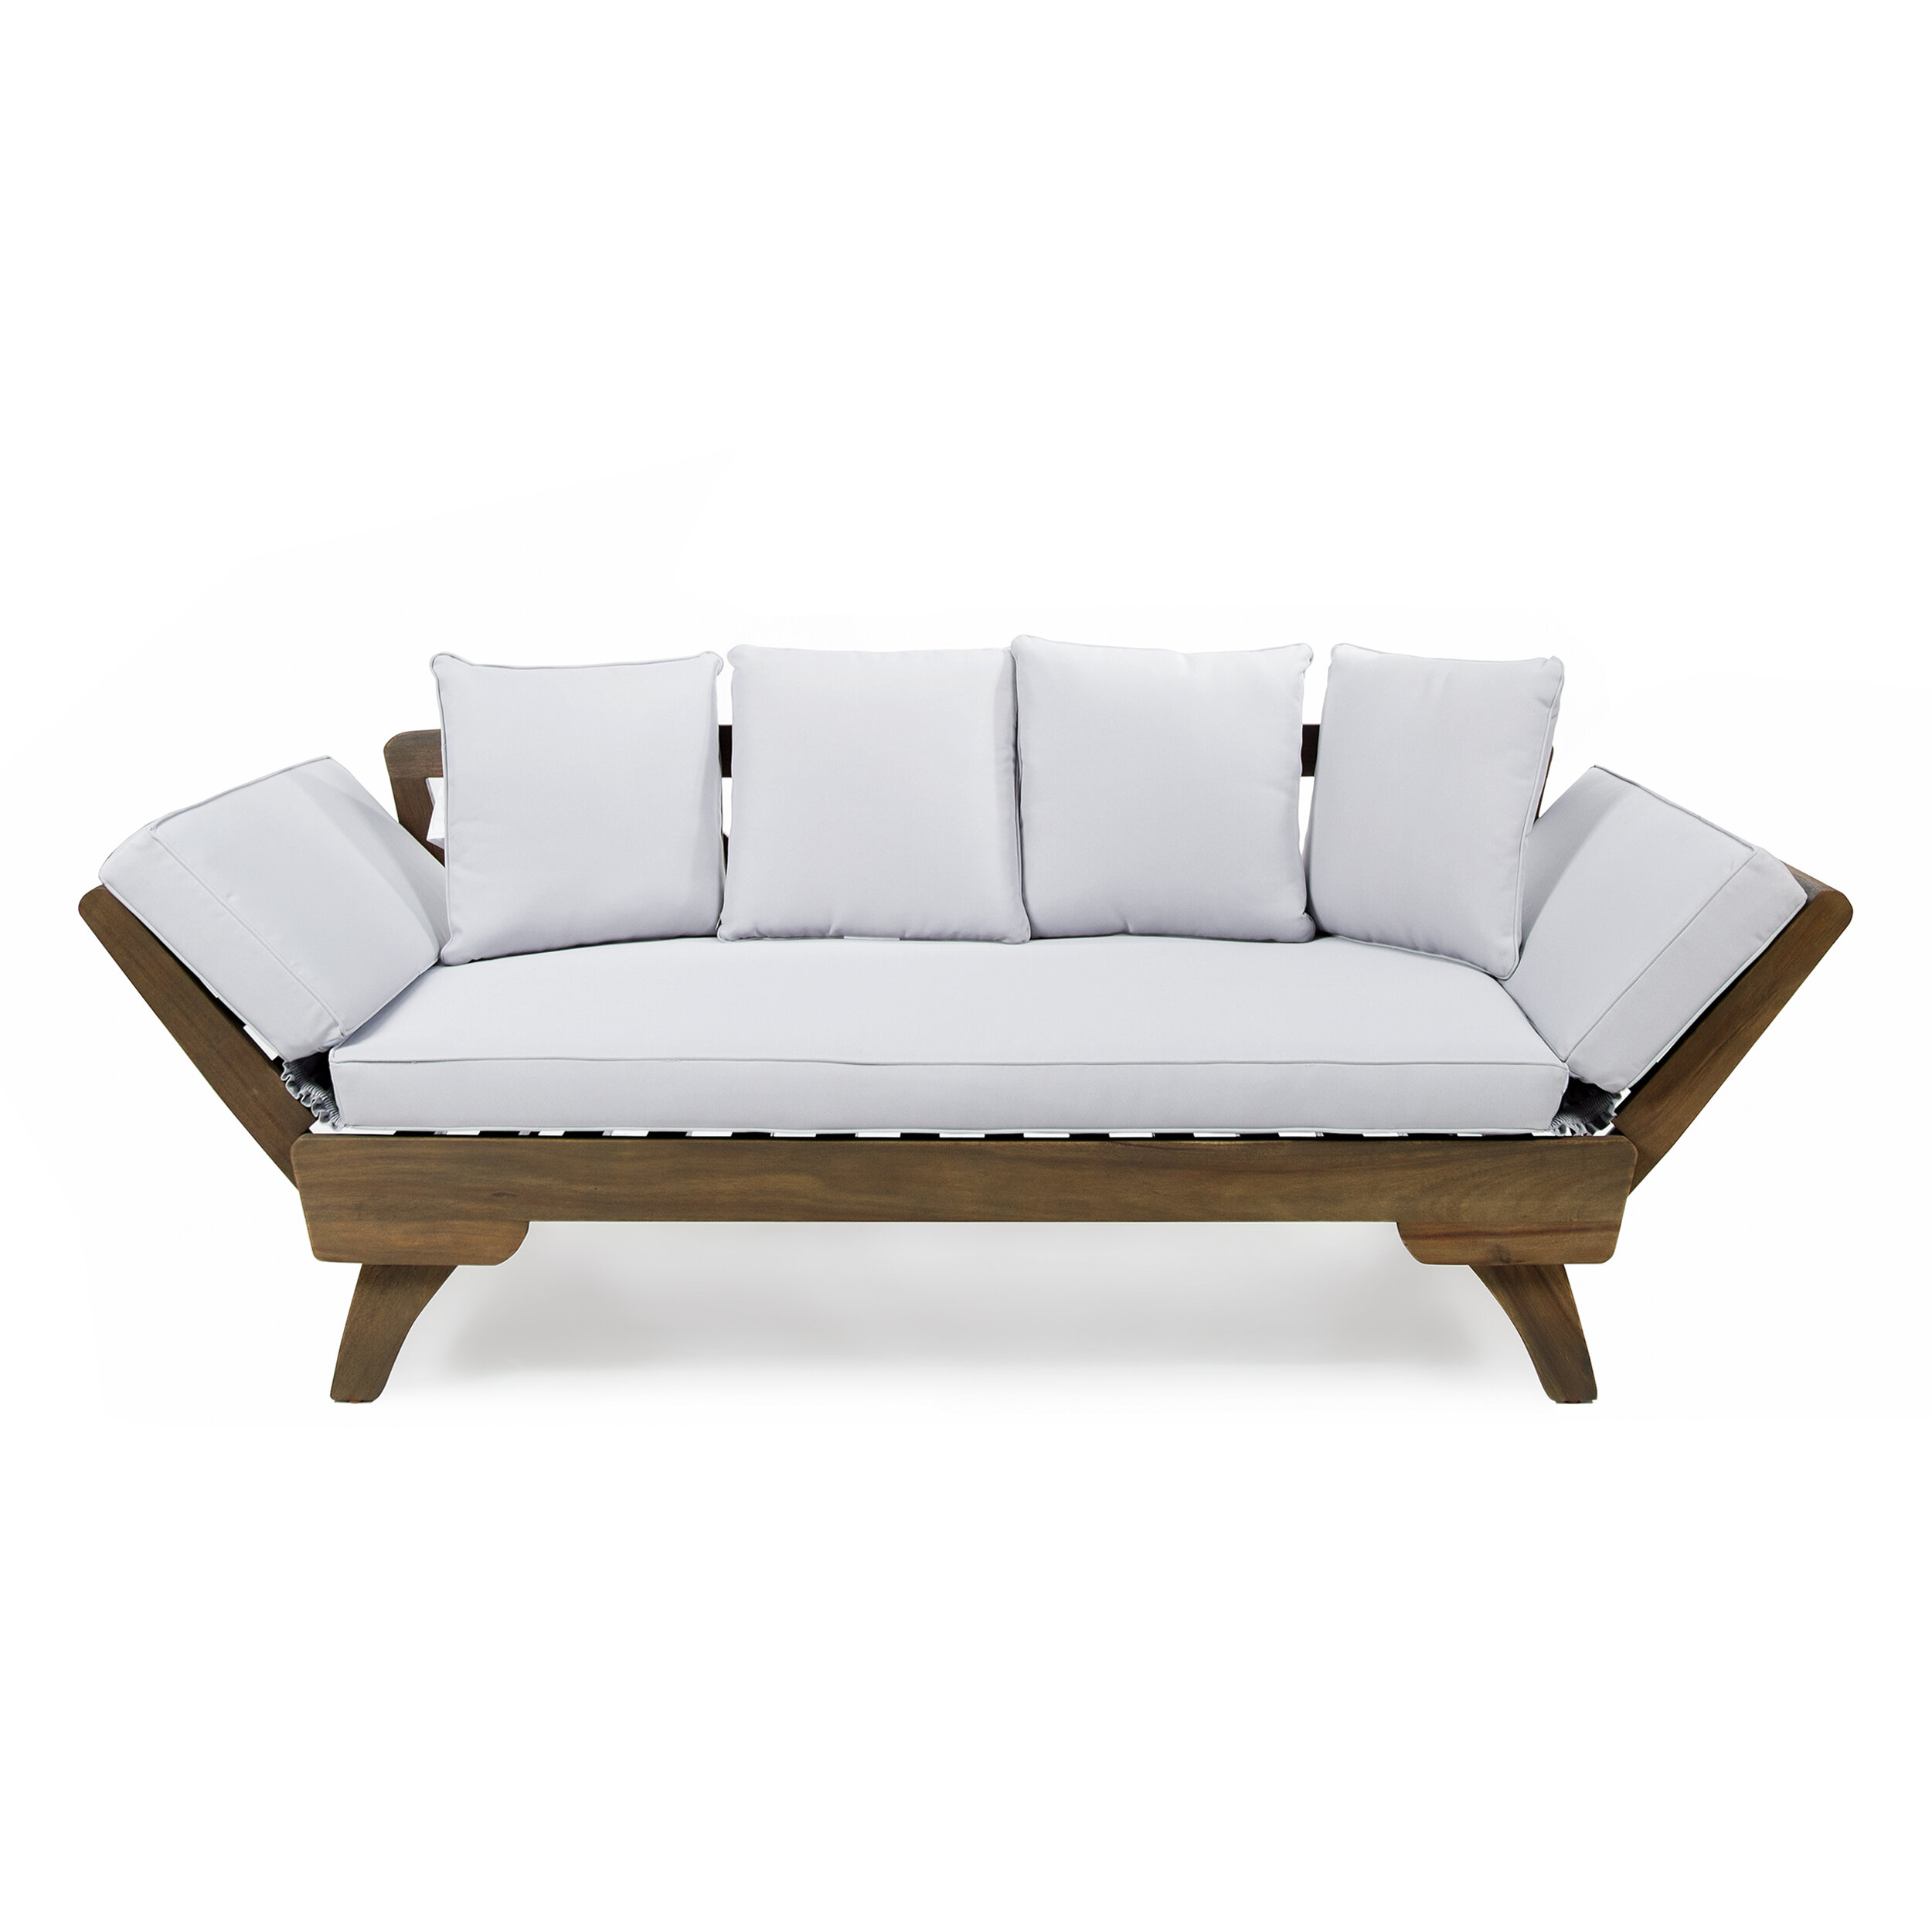 Ellanti patio daybed with cushions reviews allmodern